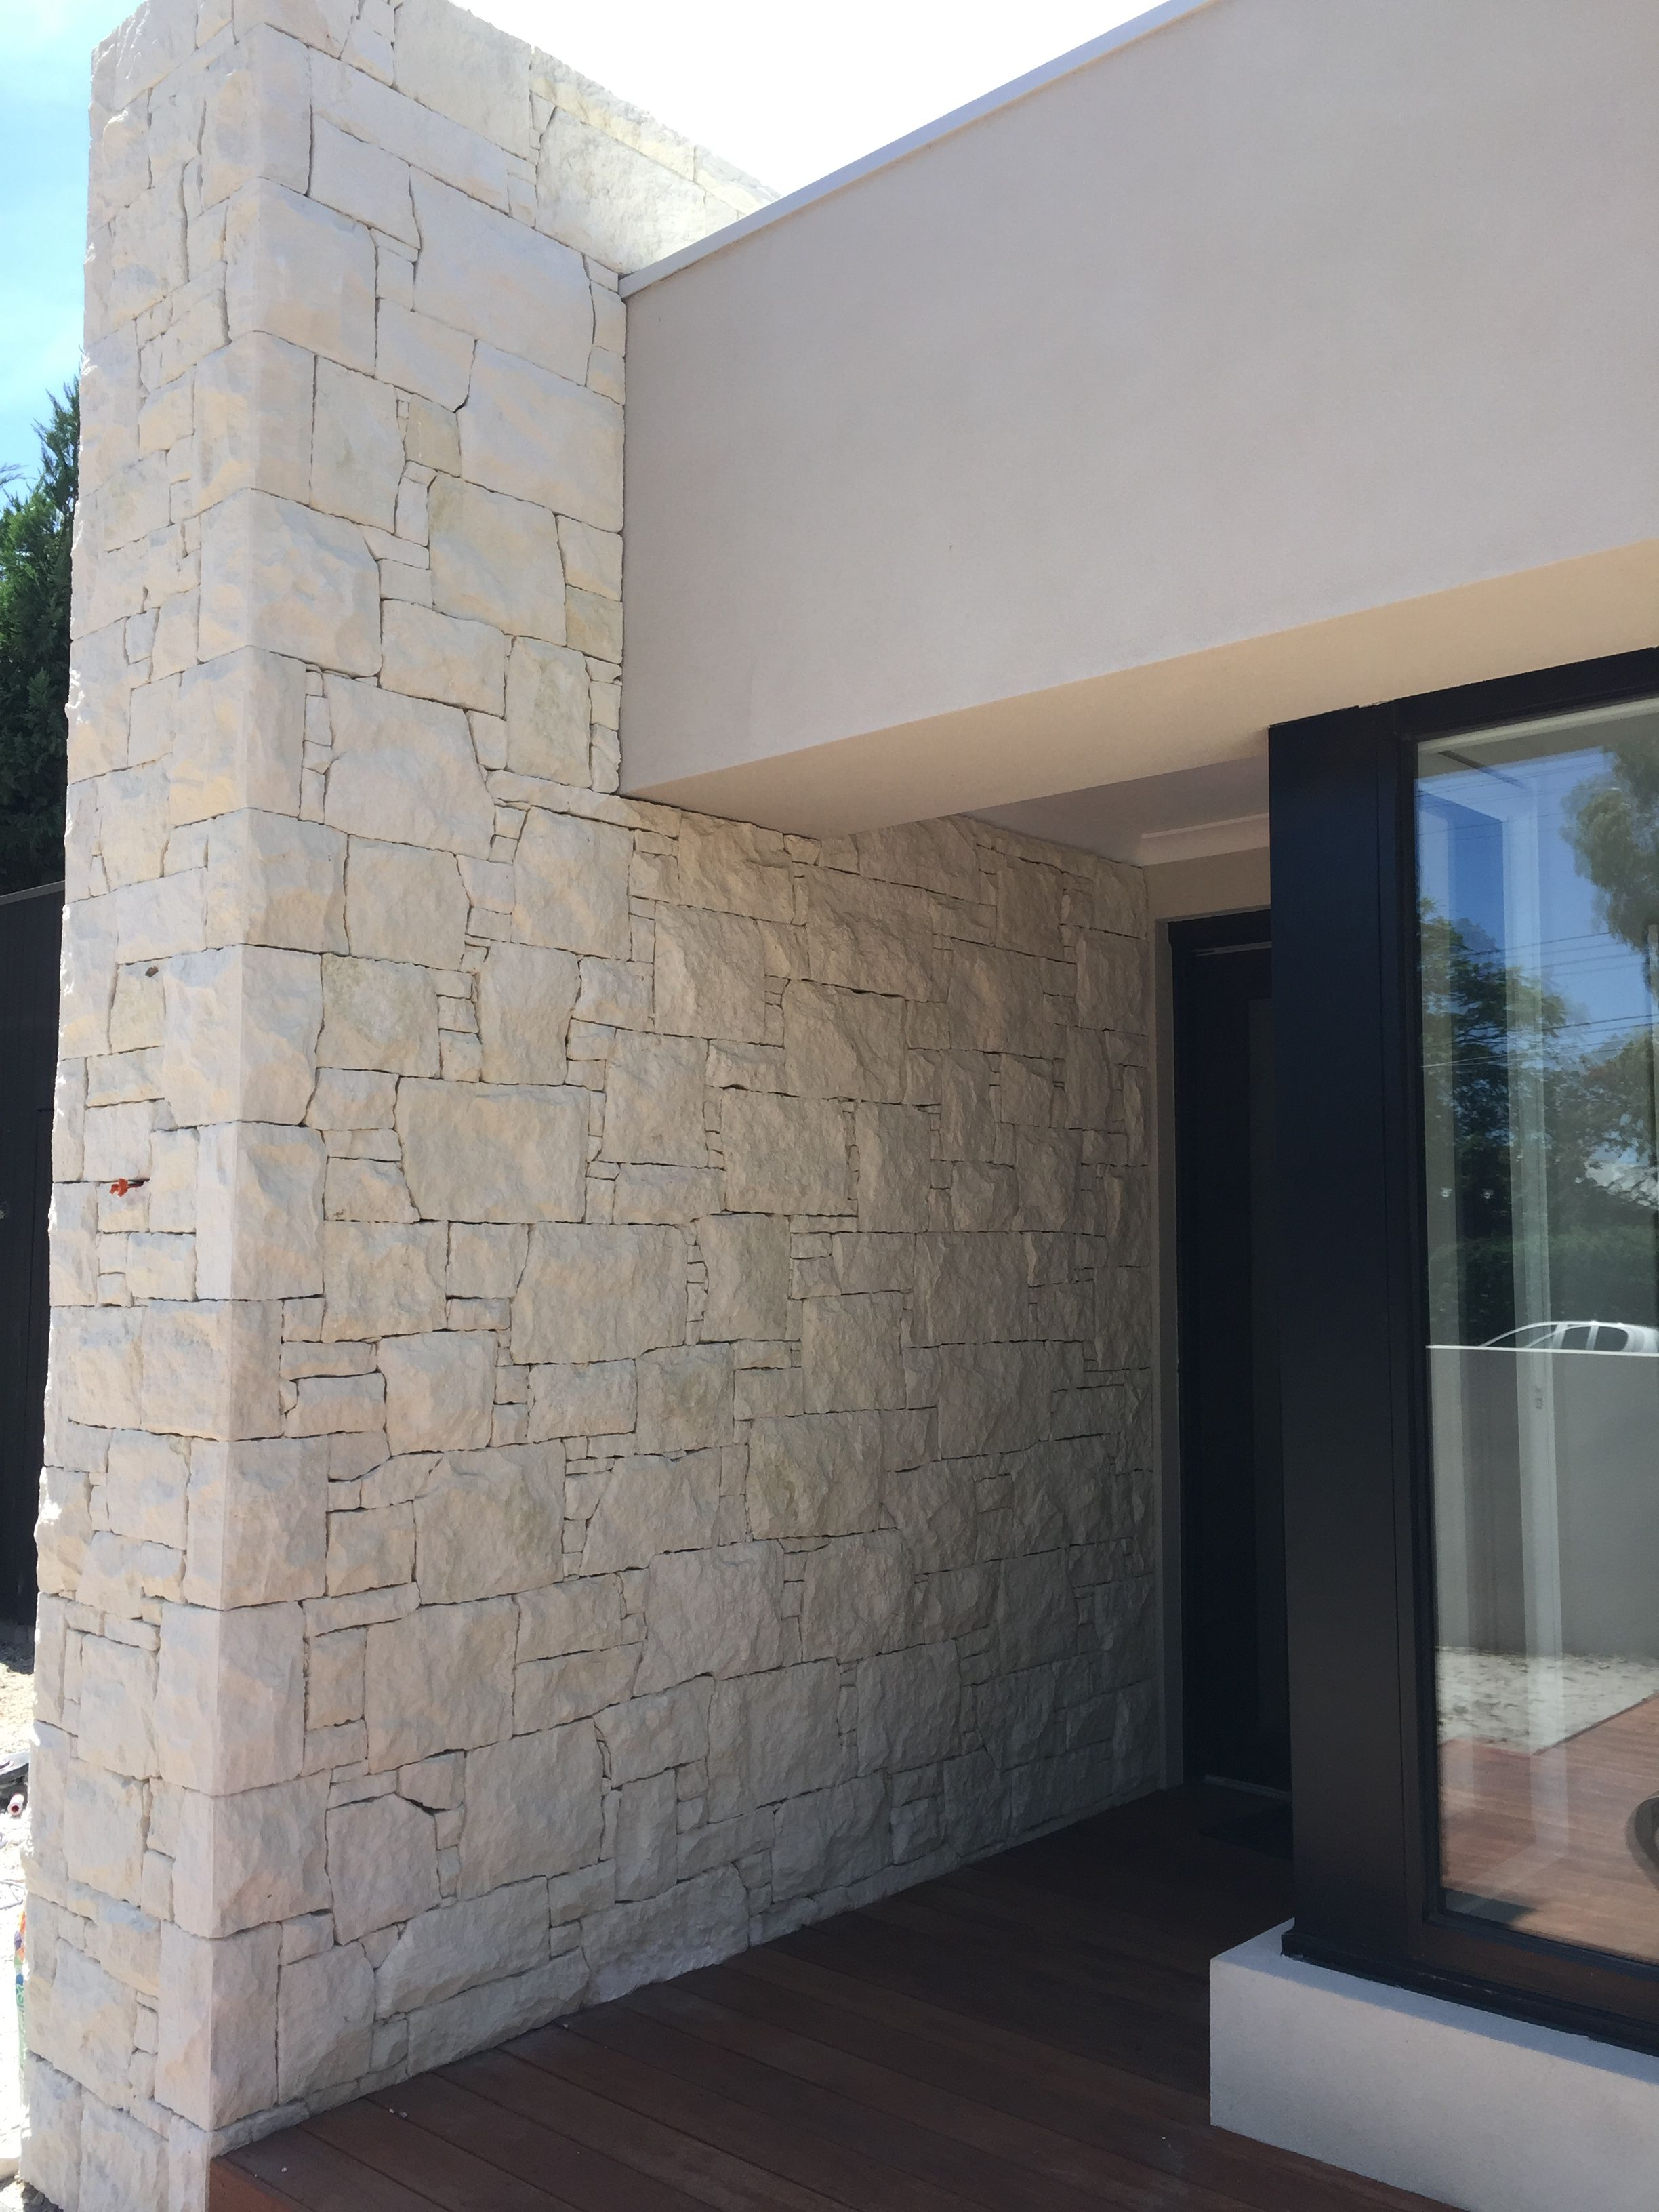 South Australian Limestone Cladding In A Mosaic Pattern